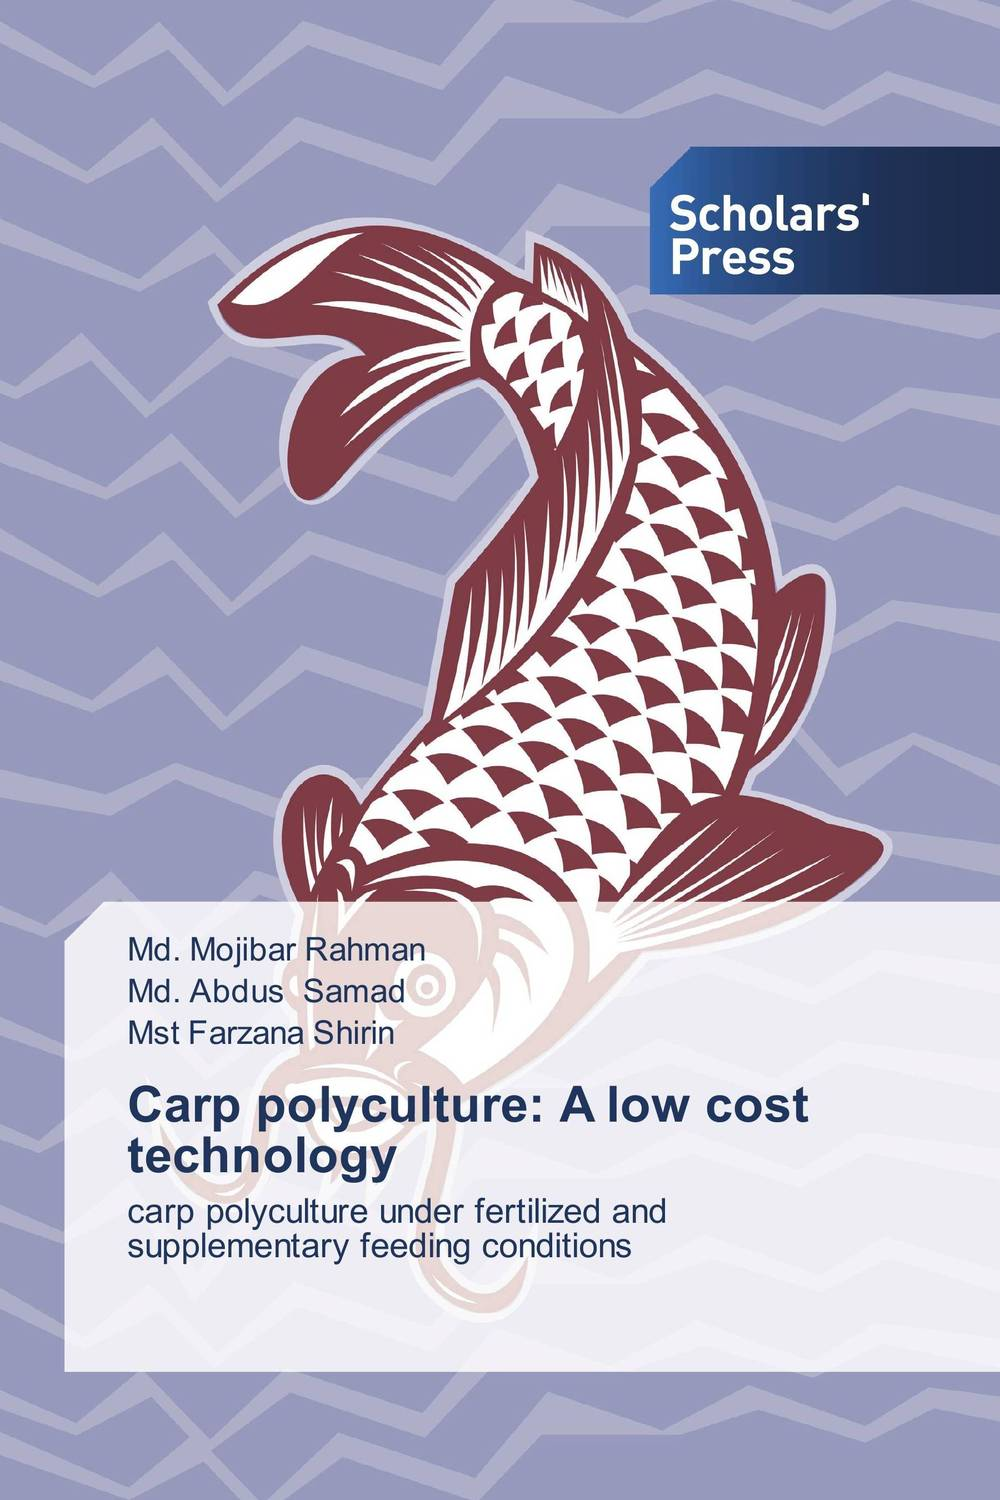 Carp polyculture: A low cost technology norman god that limps – science and technology i n the eighties